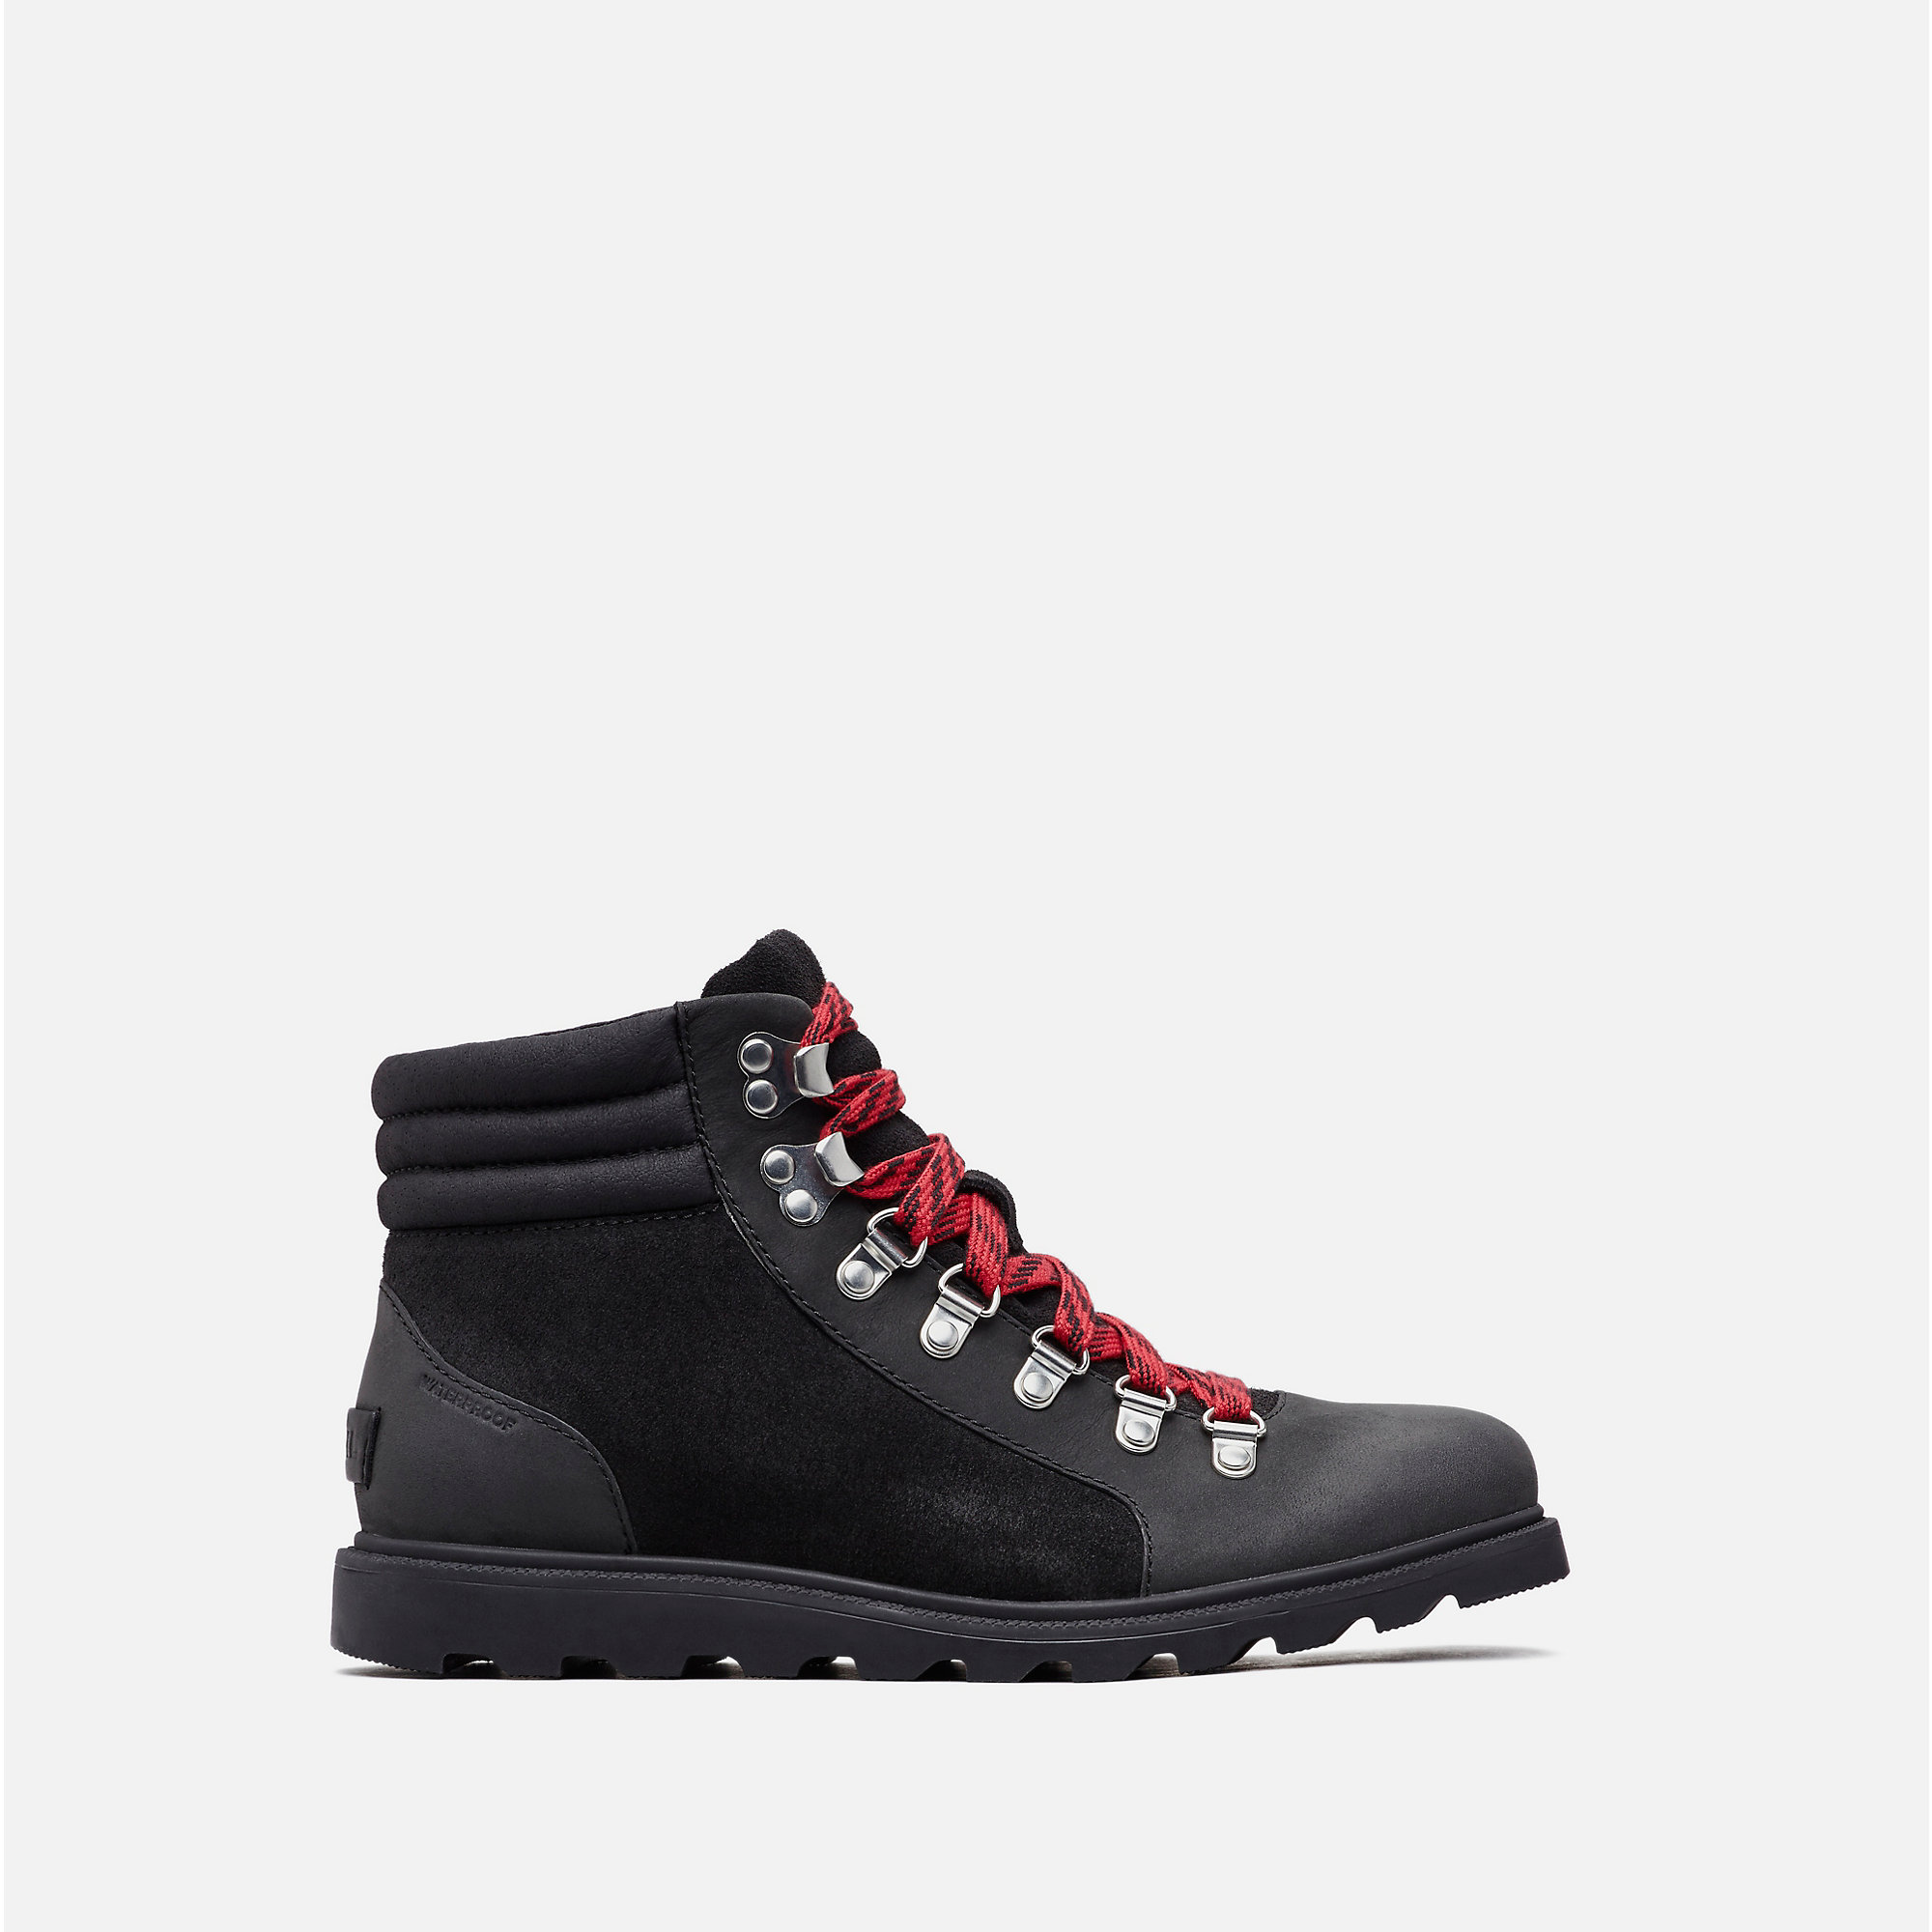 Image of Sorel AINSLEY CONQUEST 010 8-